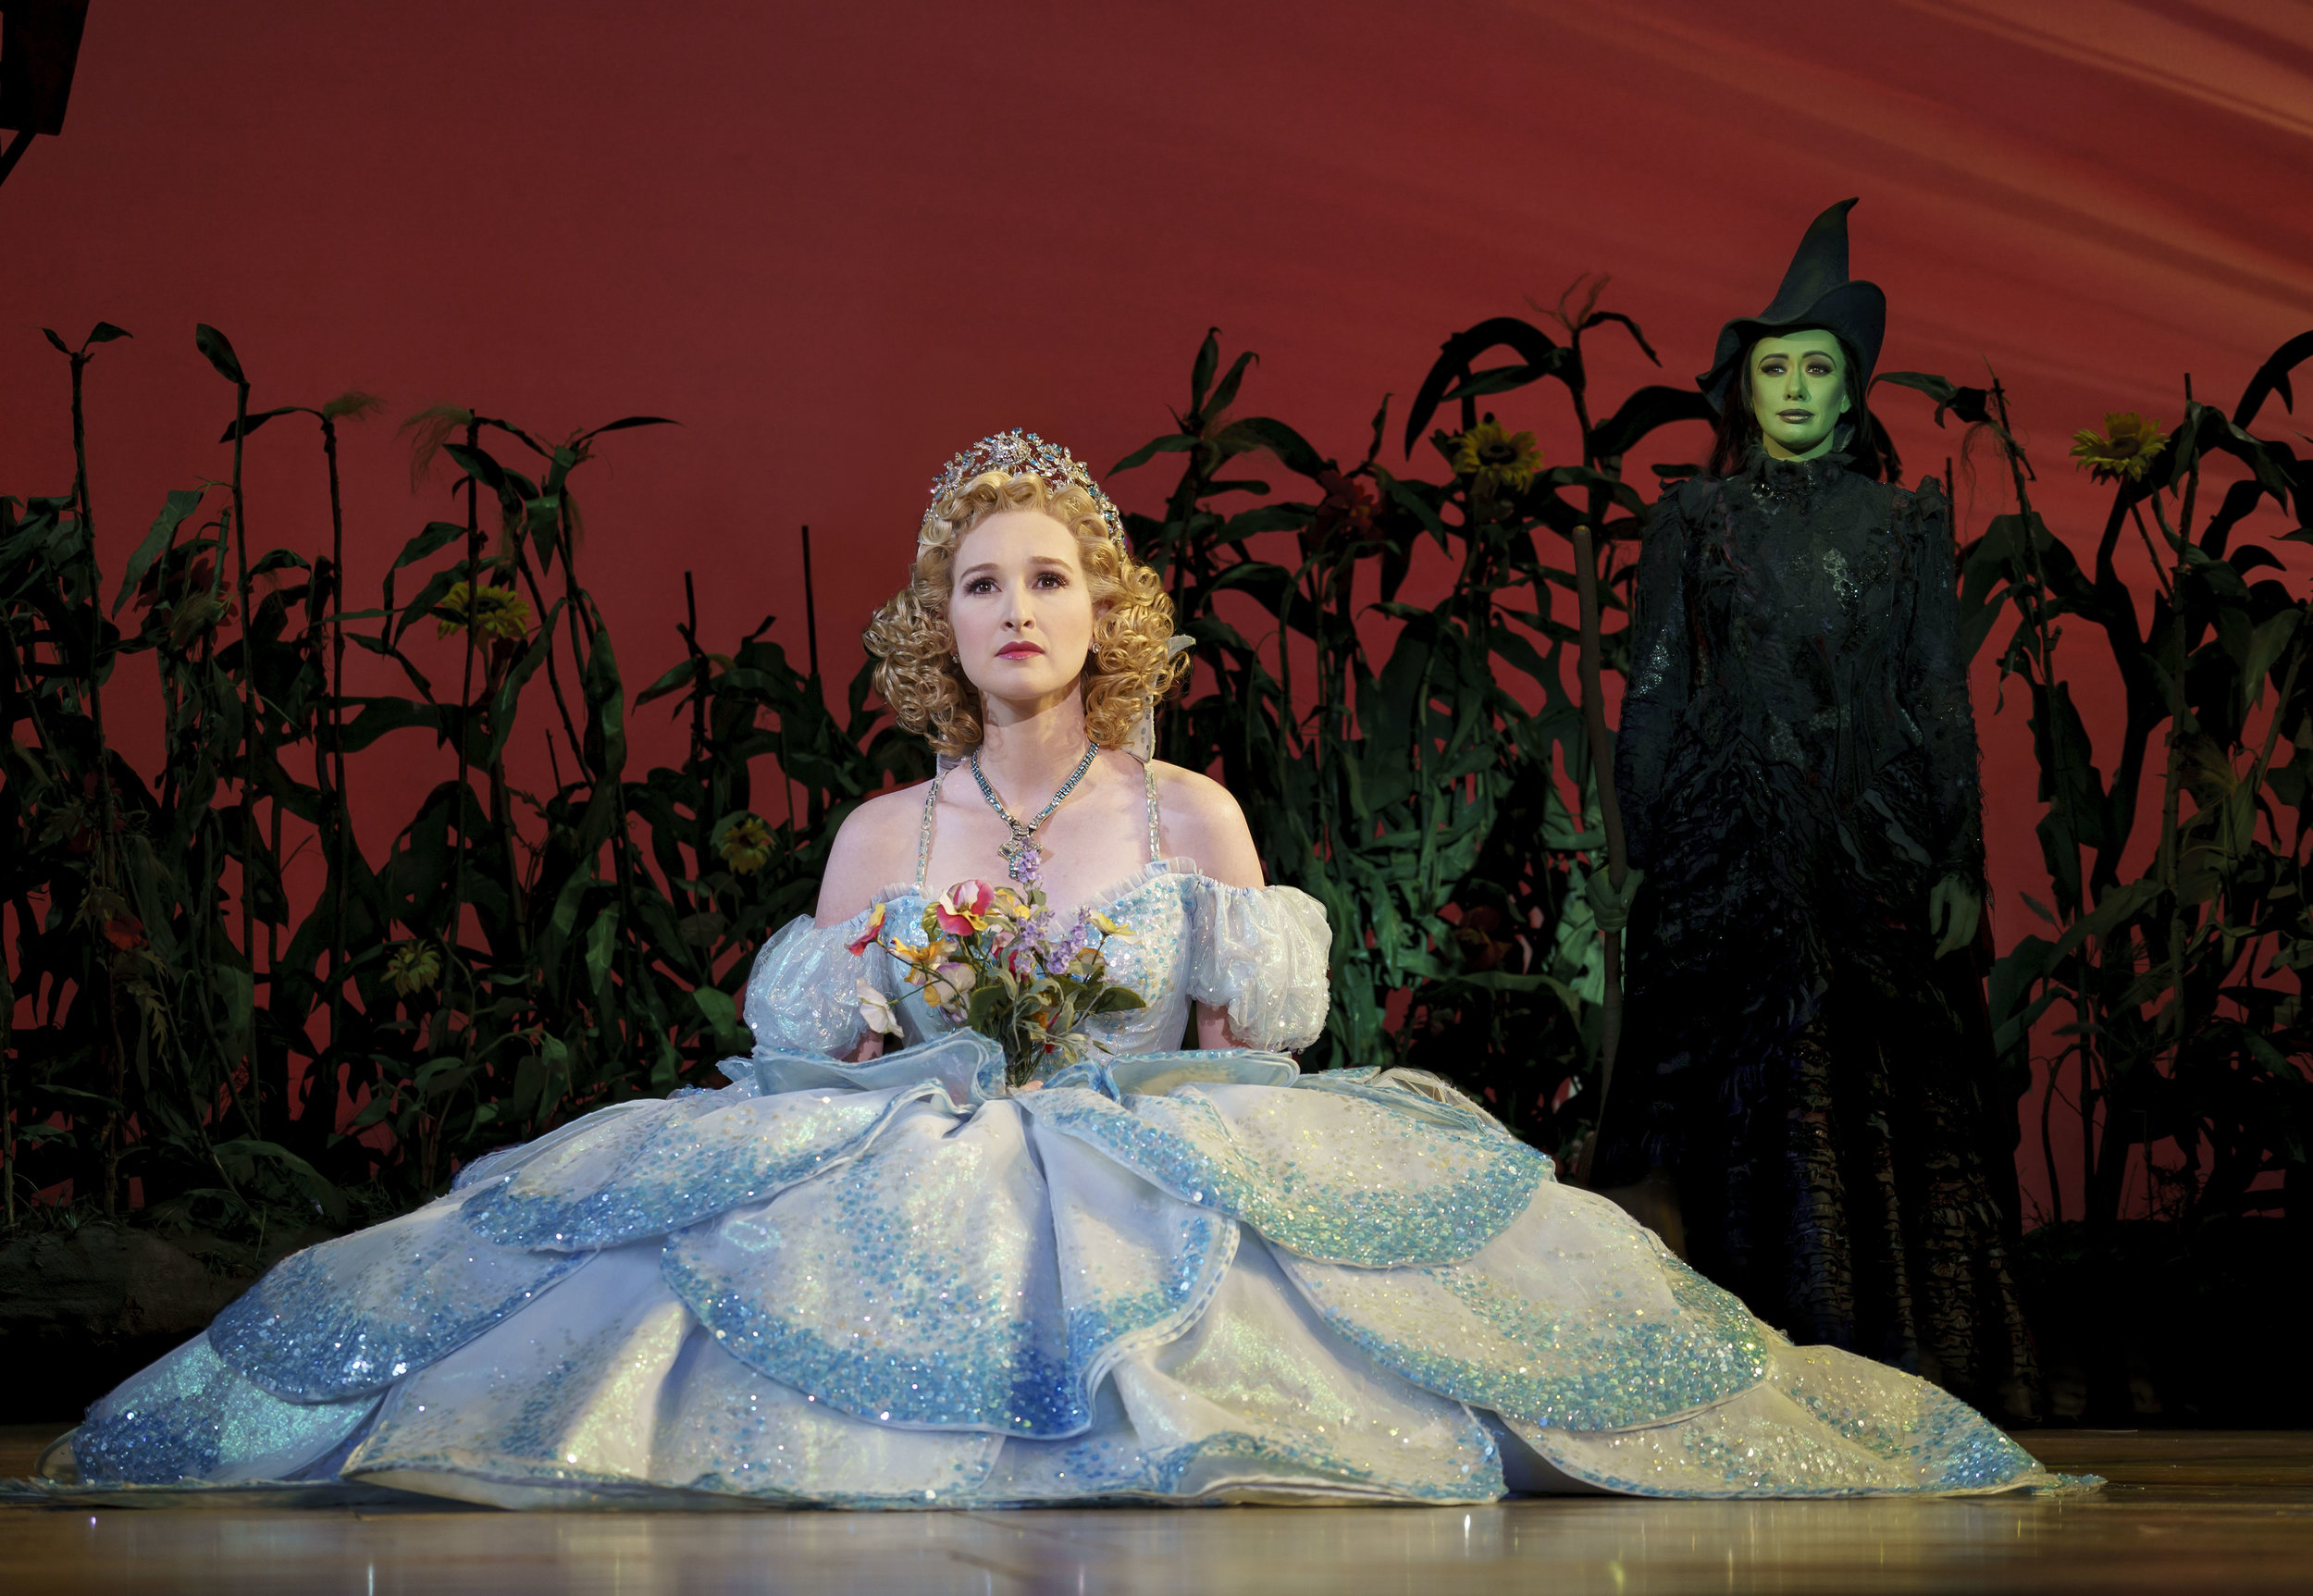 Erin Mackey & Mariand Torres in WICKED. Photo by Joan Marcus - 0298r.jpg